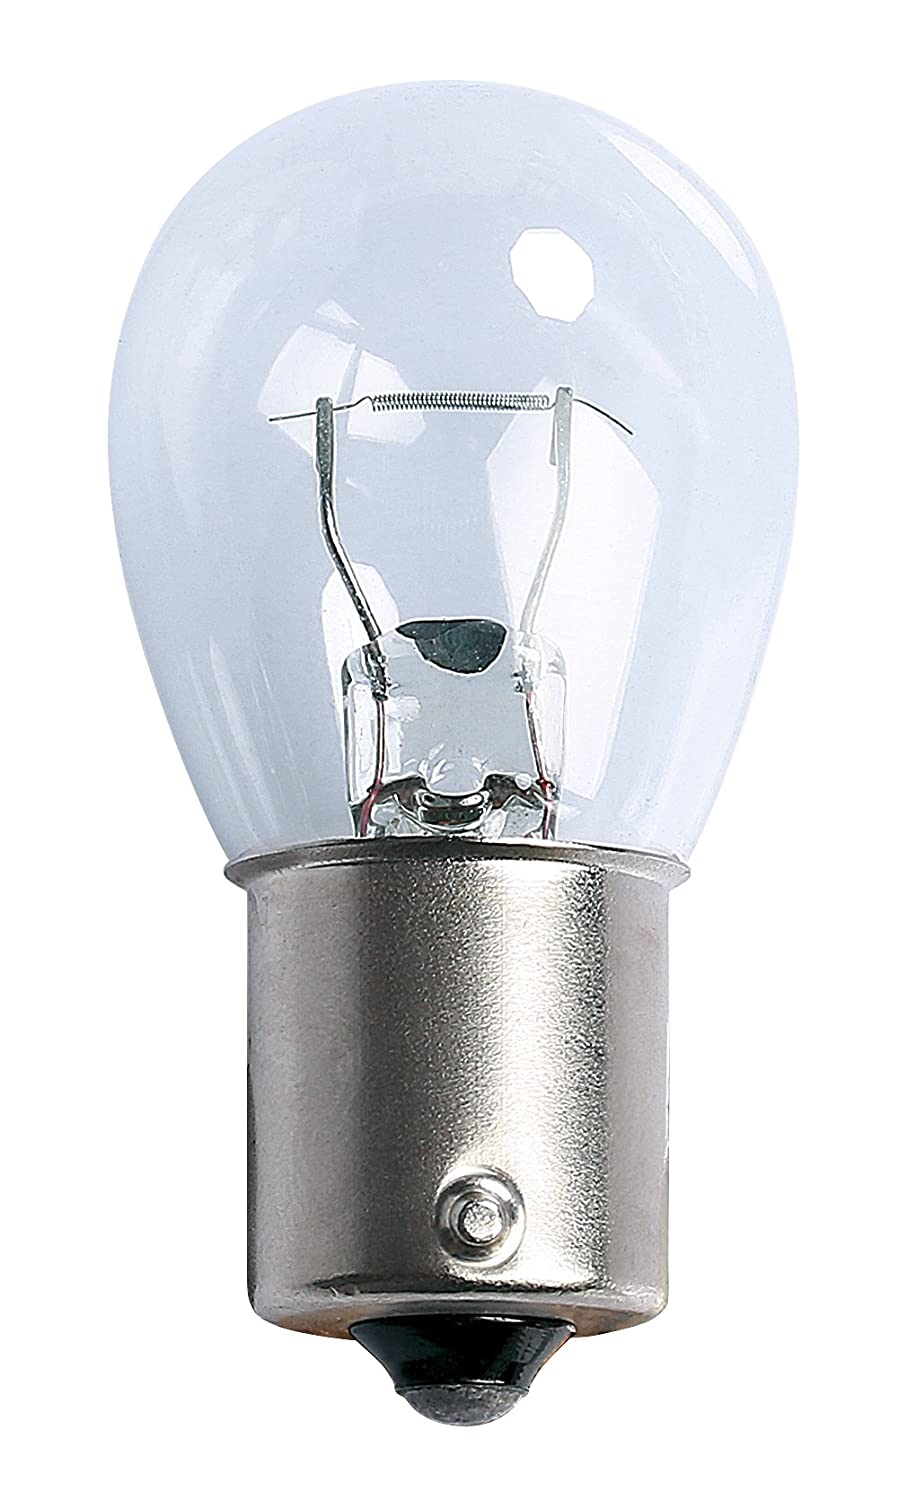 Simply S382 P21W Auxiliary Bulb, 12 V, 21 W, Set of 10